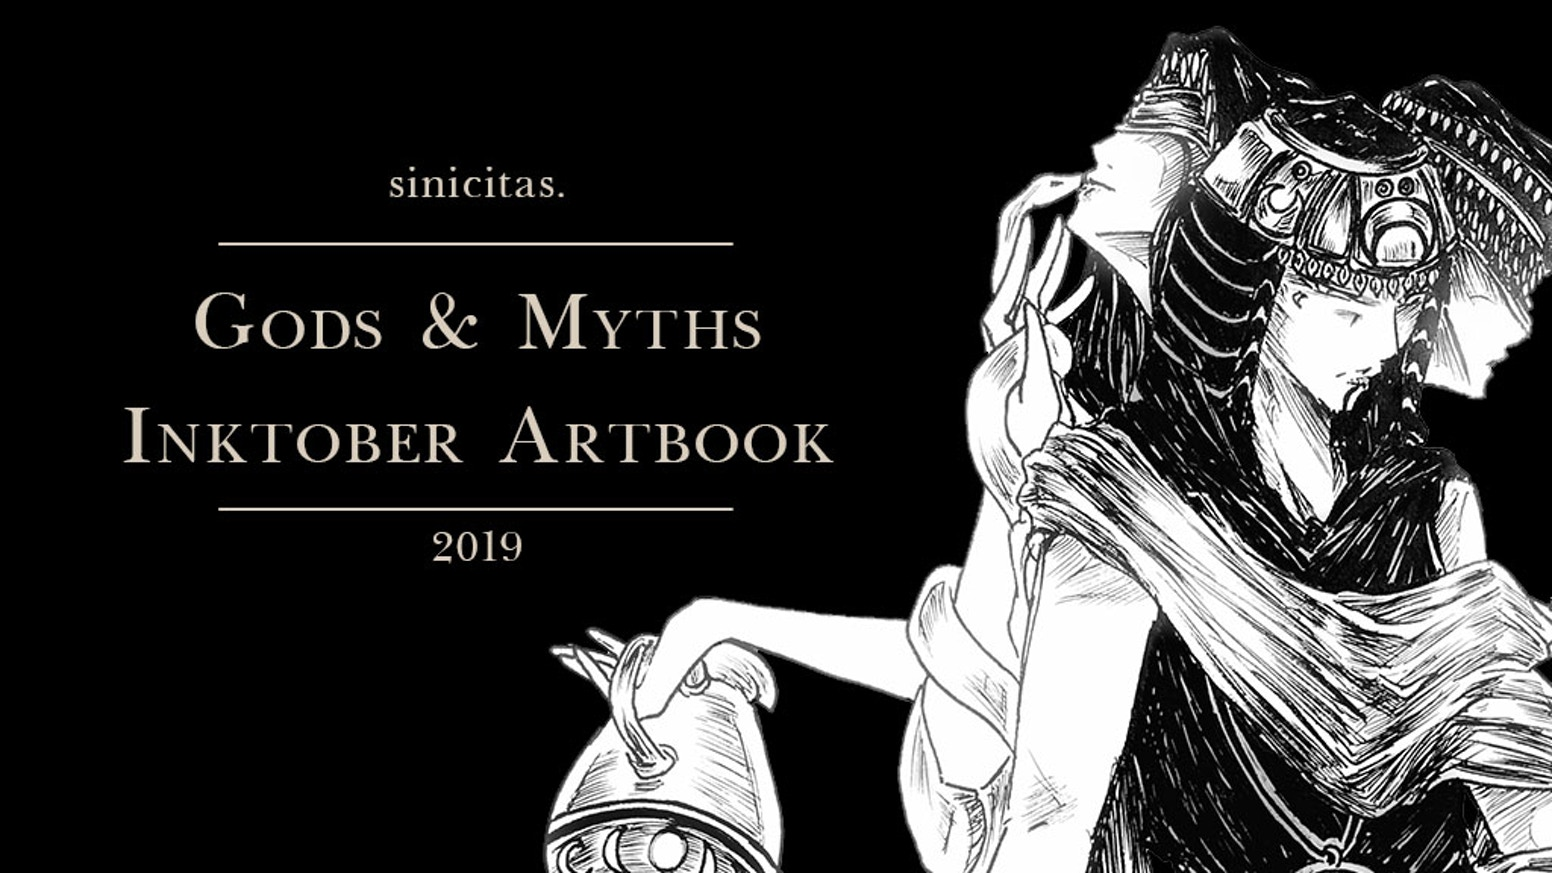 An Artbook with all of my Inktober characterdesigns + informations about the various gods and creatures they are based on.